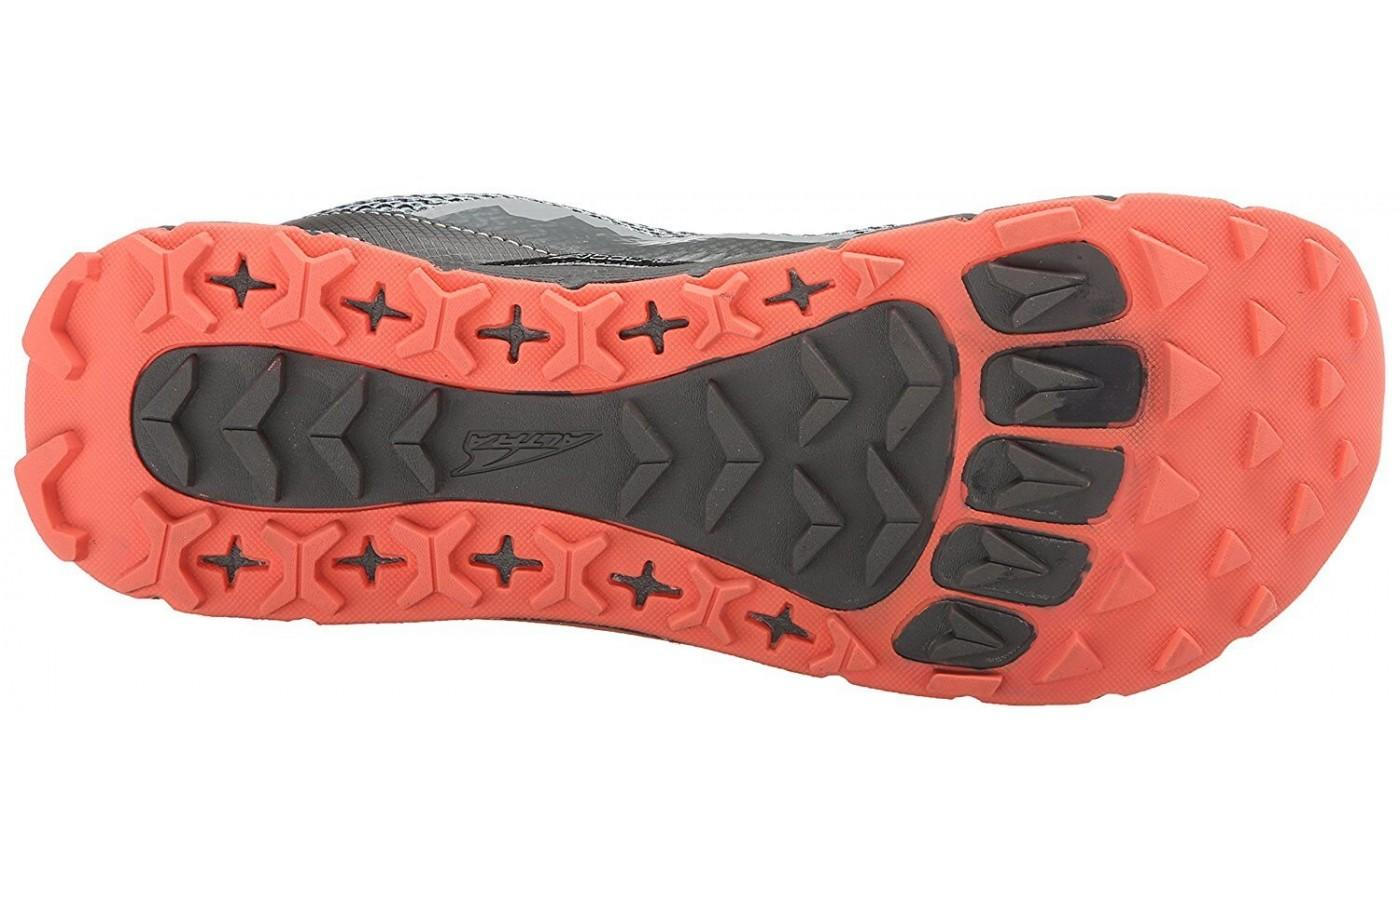 You can clearly see the shape of a foot within the outsole's design